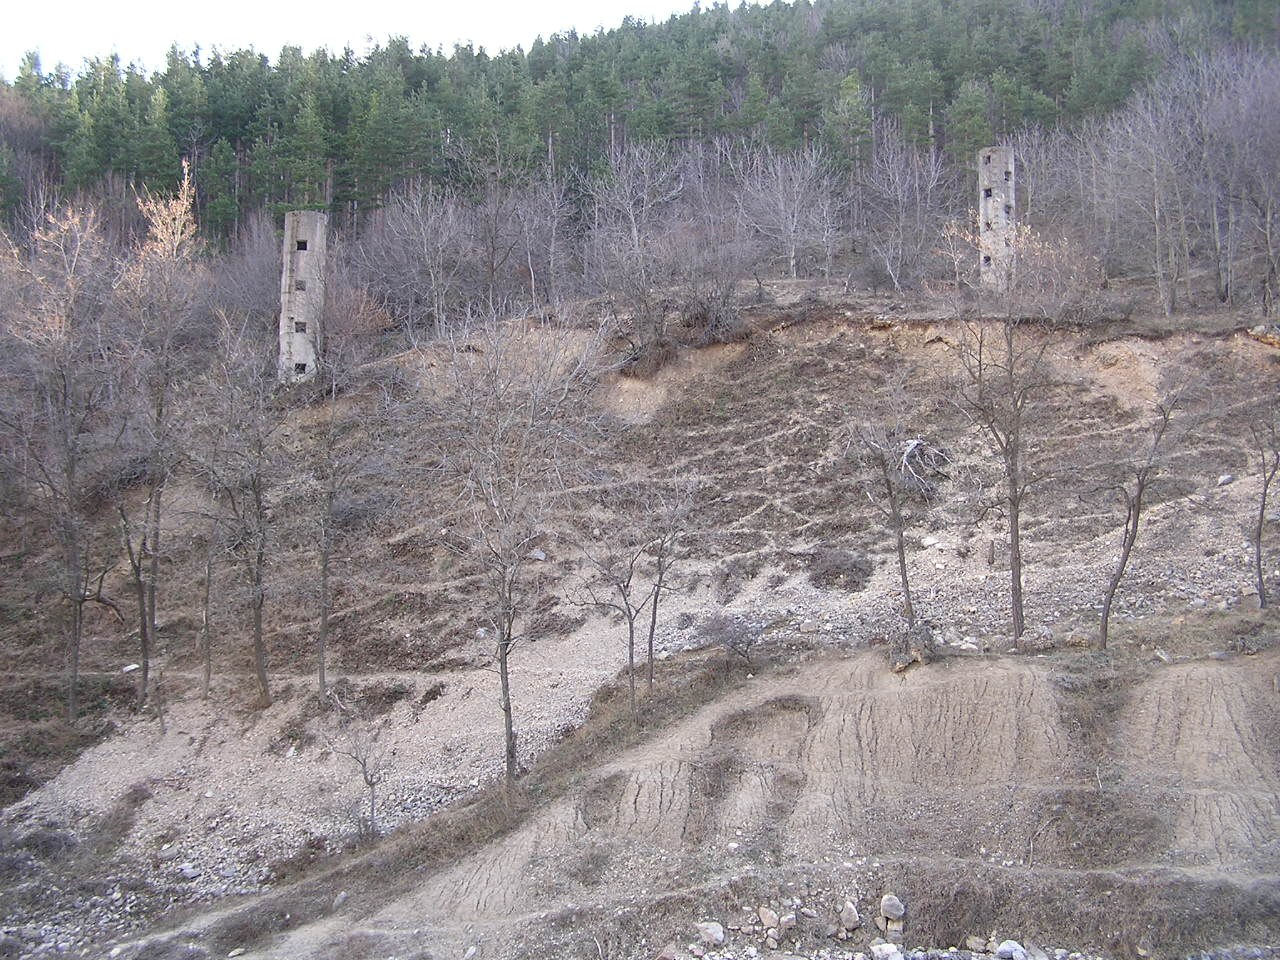 Detail of the area where the tailings dam stood. In the foreground some accumulations of consolidated muds and, in the background, two of the overflow towers built expecting a further increase of the embankment. Two rows of overflow towers were constructed: the second row (photo) was never used because the embankment collapsed before the level of the stored waste muds could reach that height.